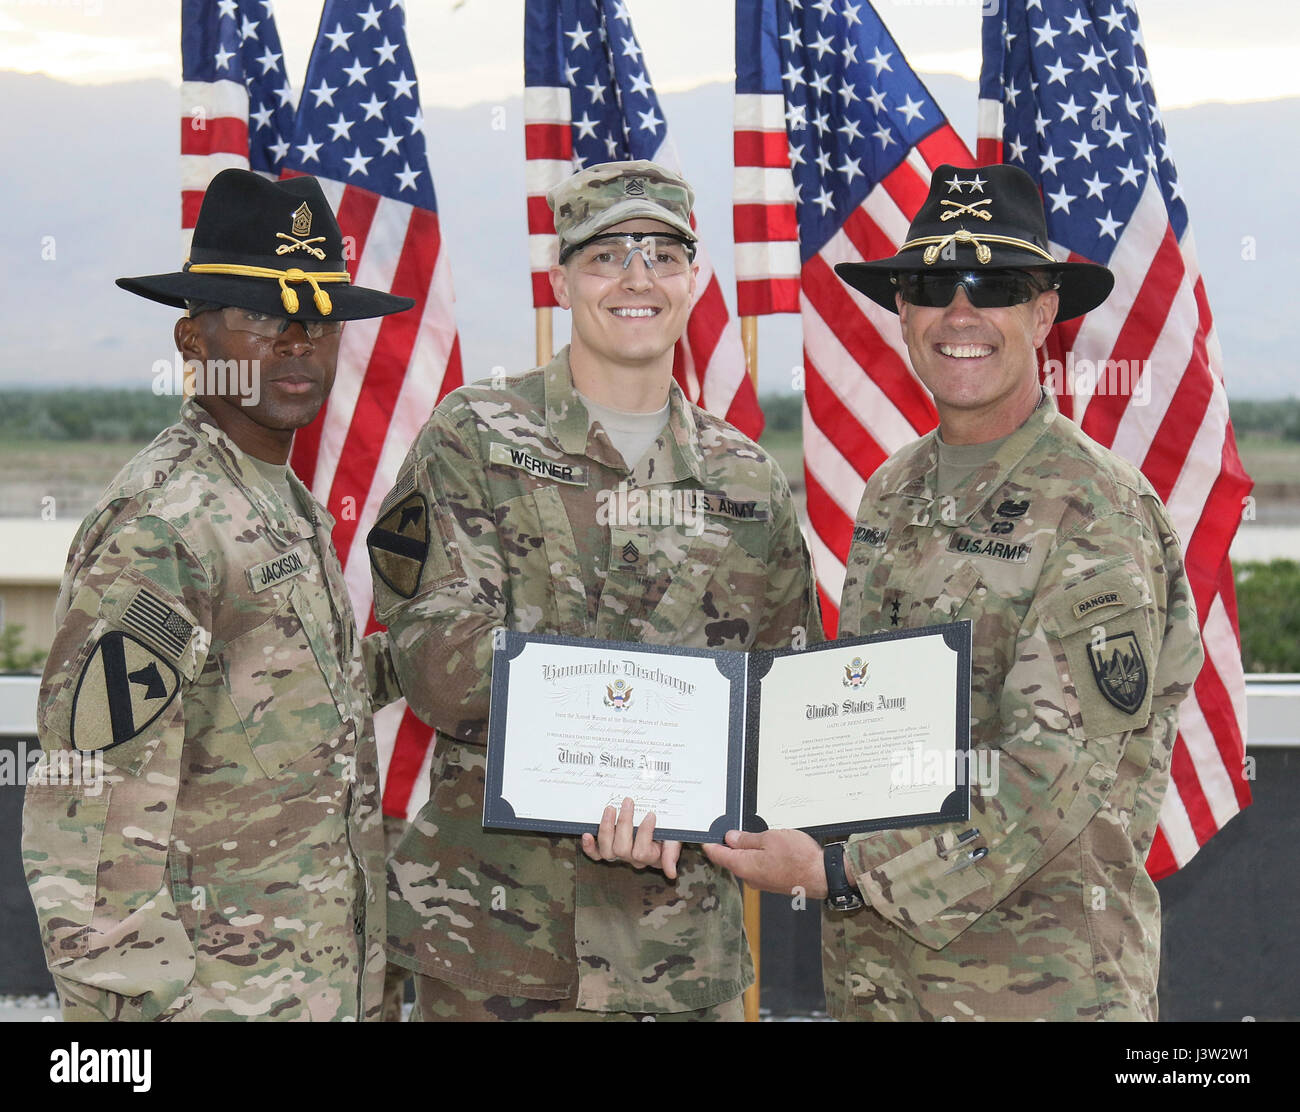 Army color casing ceremony script - The 1st Cavalry Division Sustainment Brigade Hosted A Mass Reenlistment Ceremony At Bagram Airfield Afghanistan